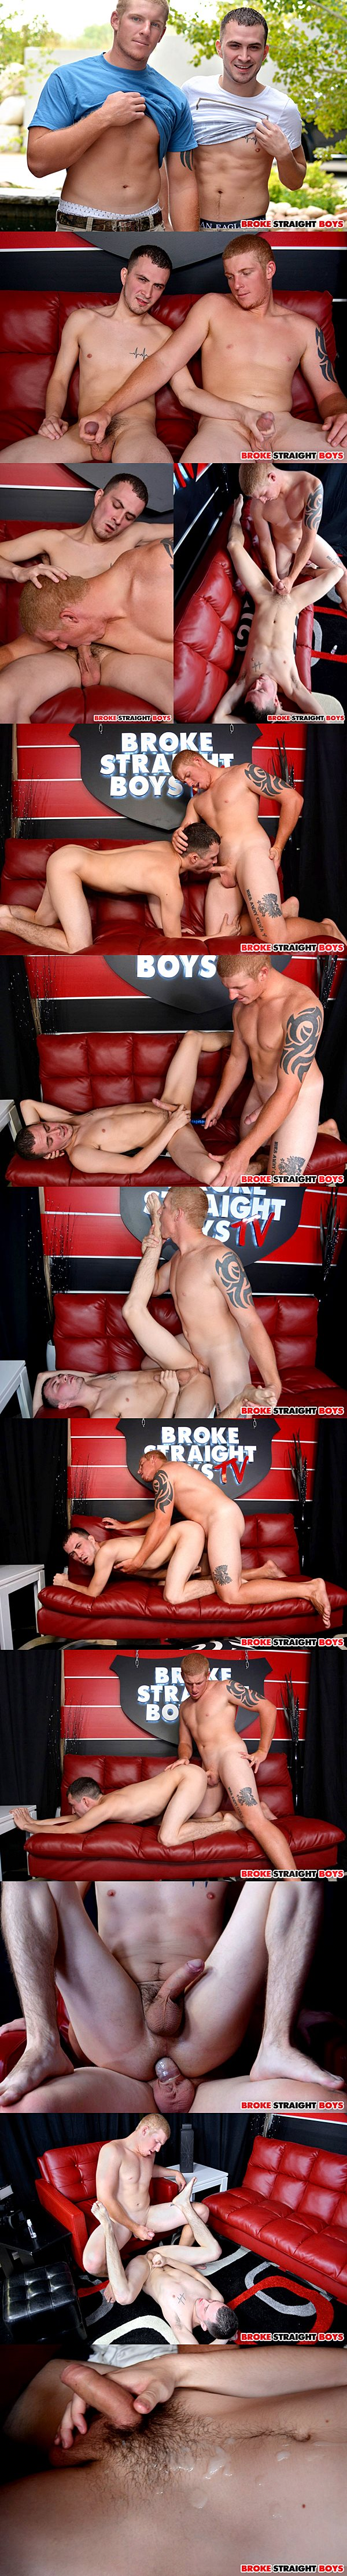 Redhead jock Conner Chesney fucks hot newcomer David Hardy's tight virgin ass at Brokestraightboys 02